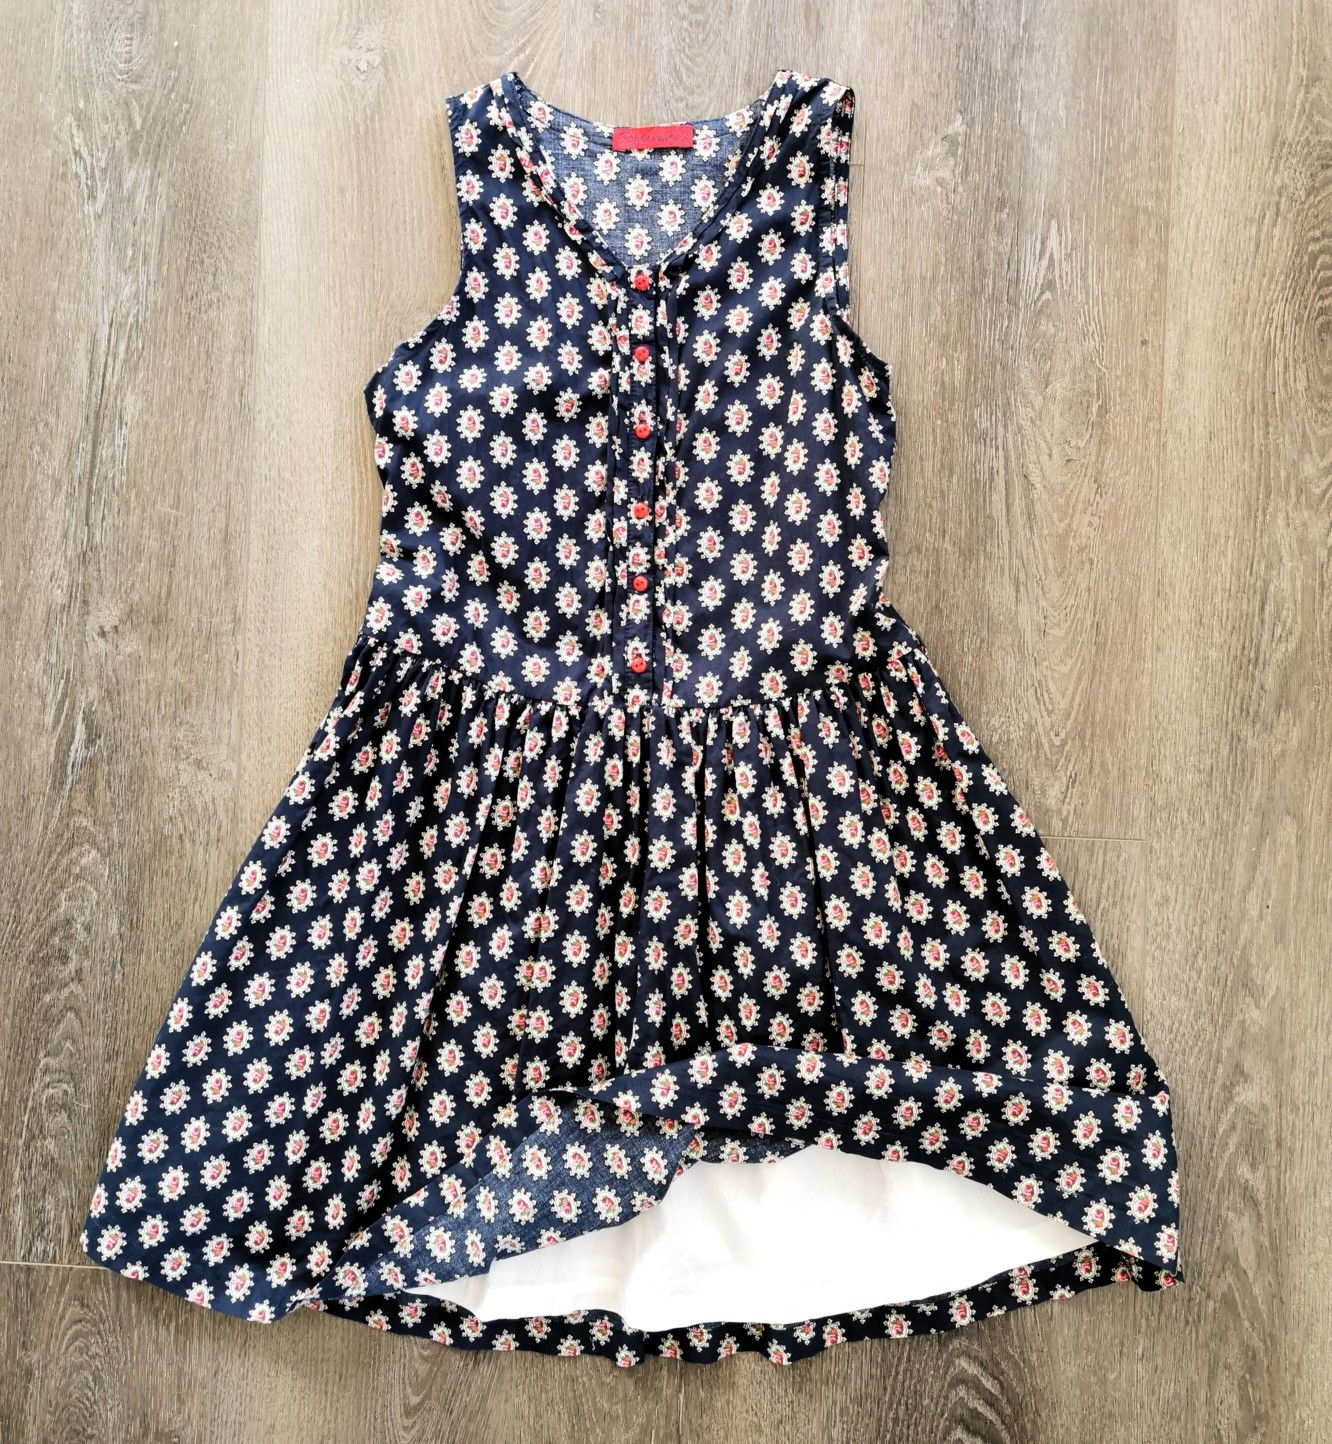 Girl Size 14 Peppermint Summer Dress Like New Condition Size Girls Dresses High Quality Dress [ 1444 x 1332 Pixel ]